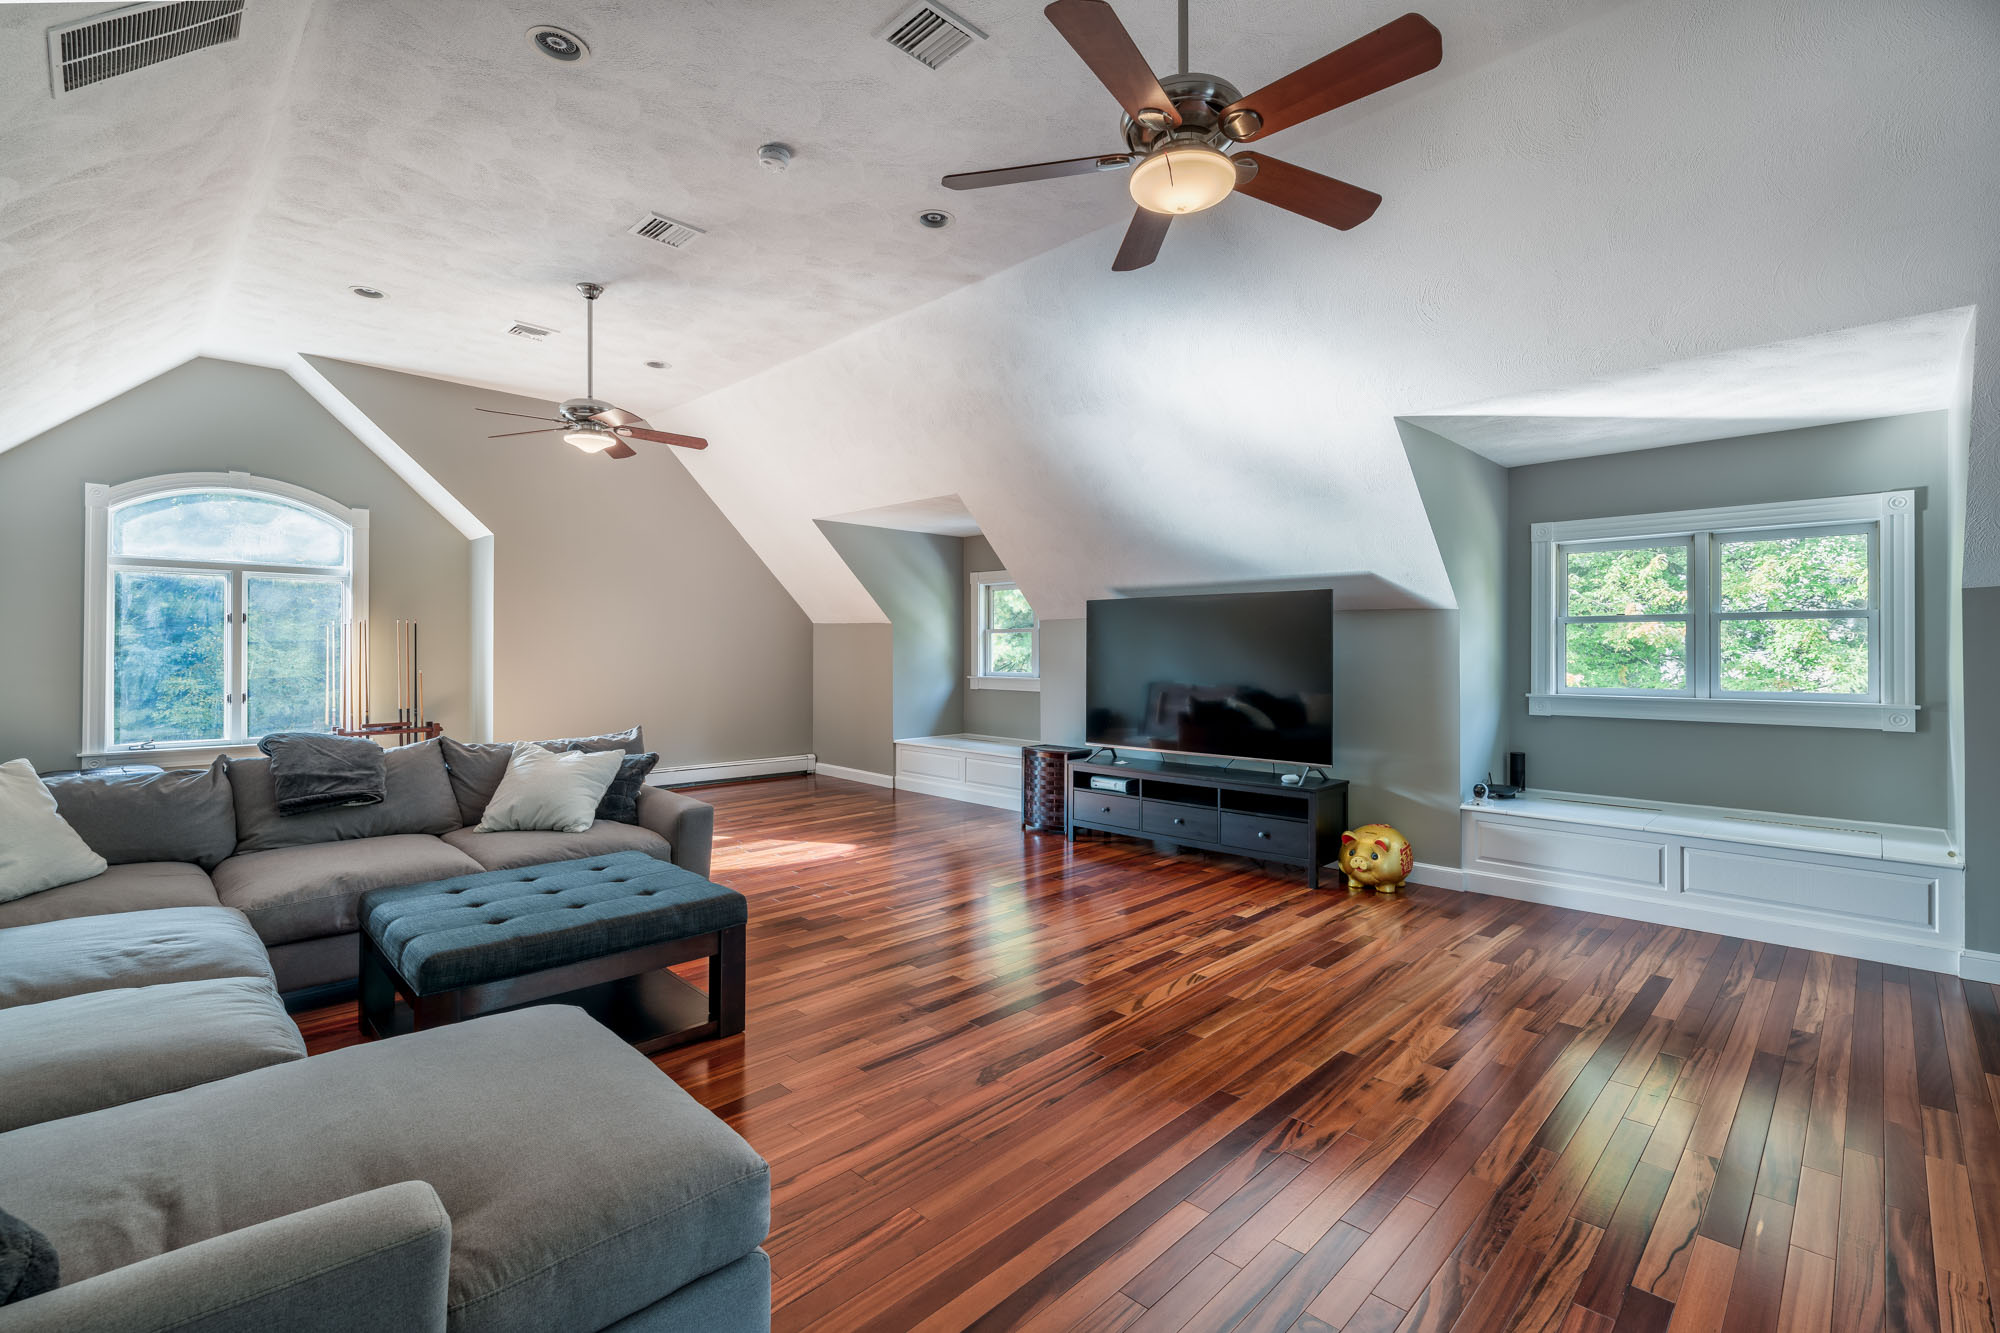 Home Renovation in Easton (After)